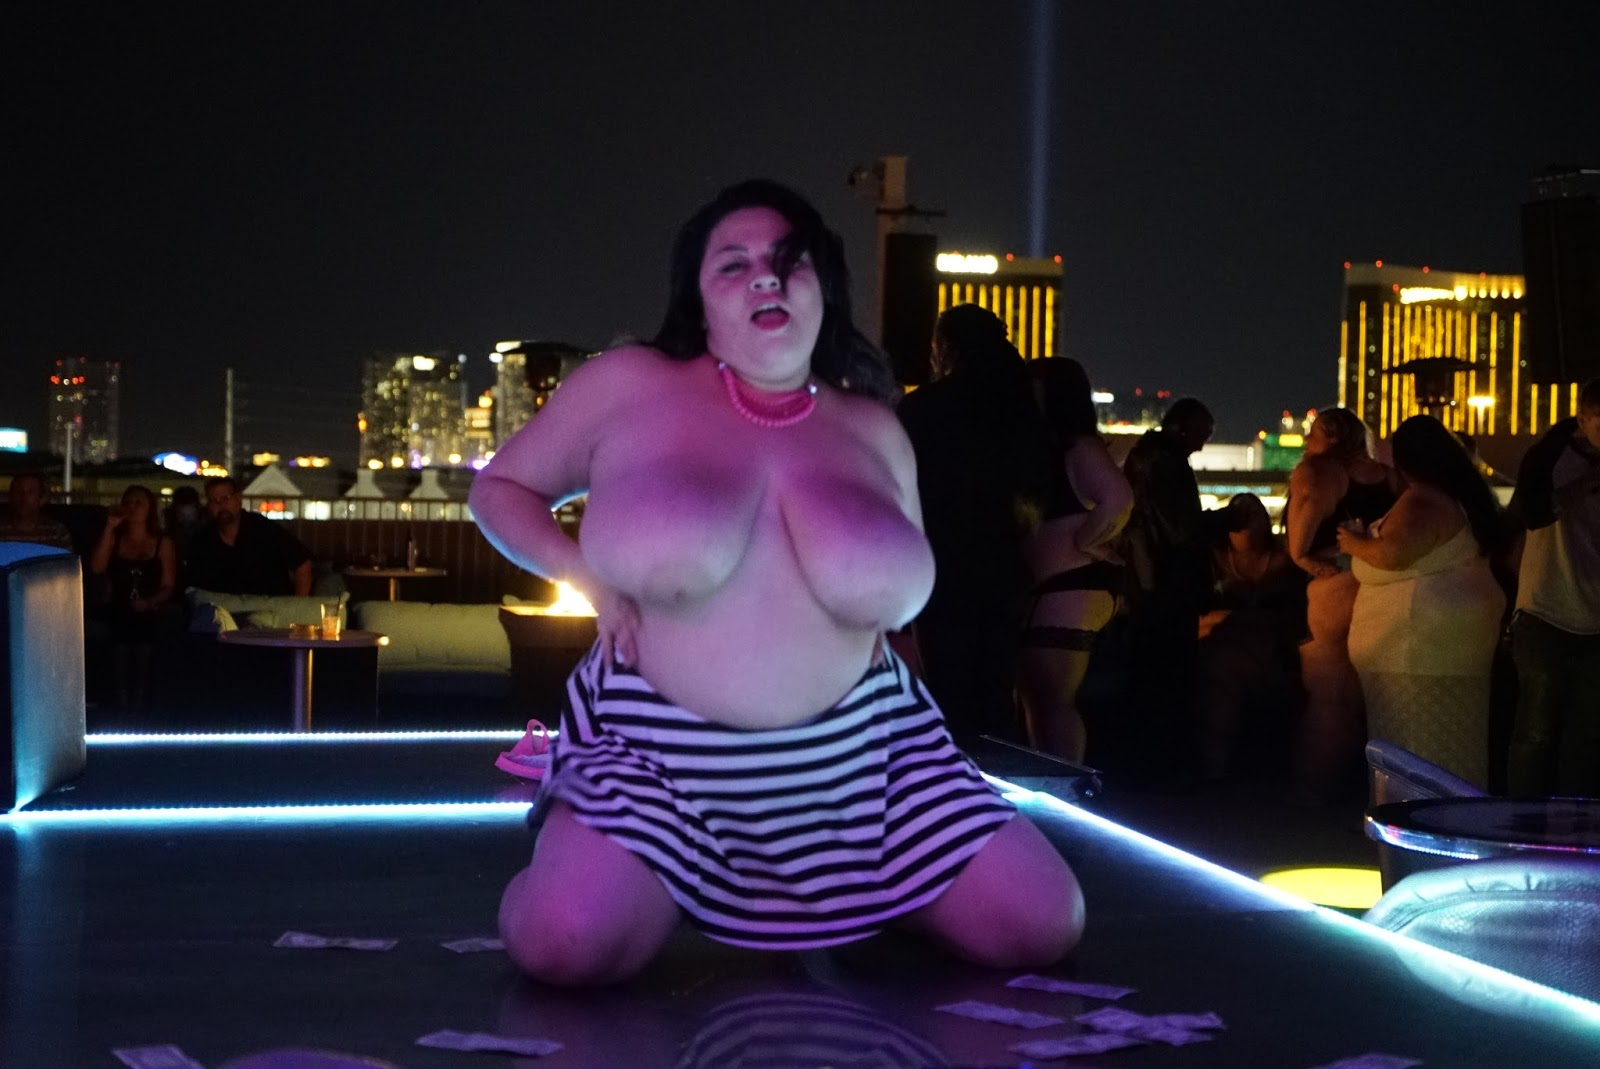 Bbw strip clubs nashville — pic 12